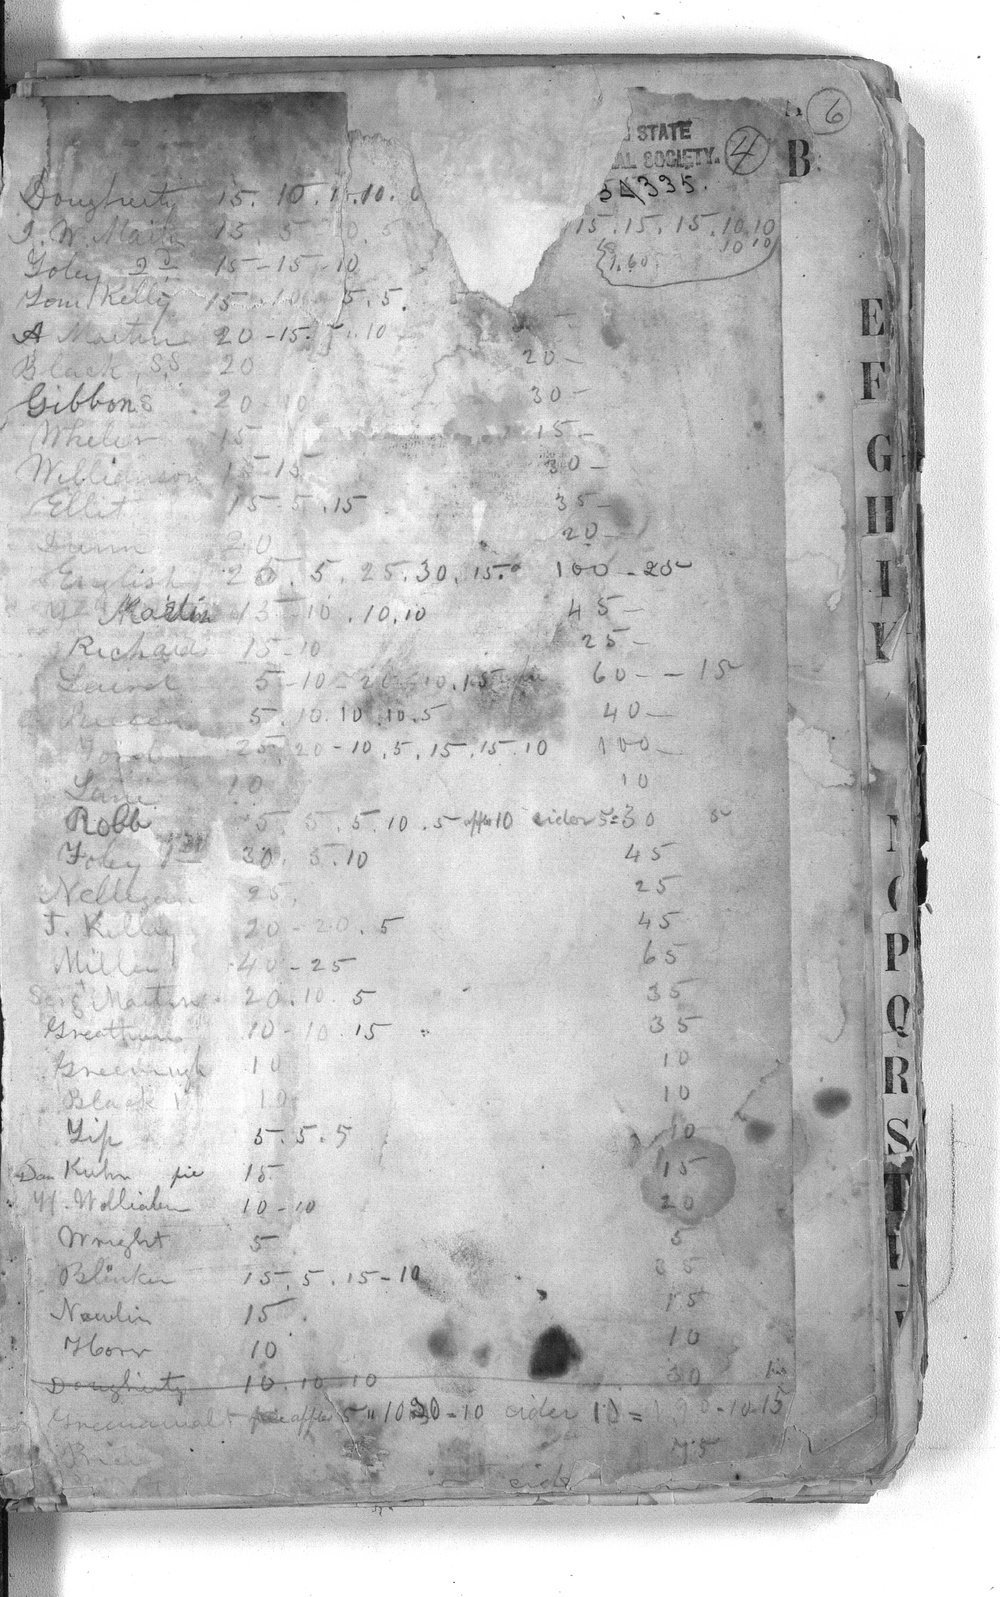 Henry Kuhn collection, record [and recipe] book - 4